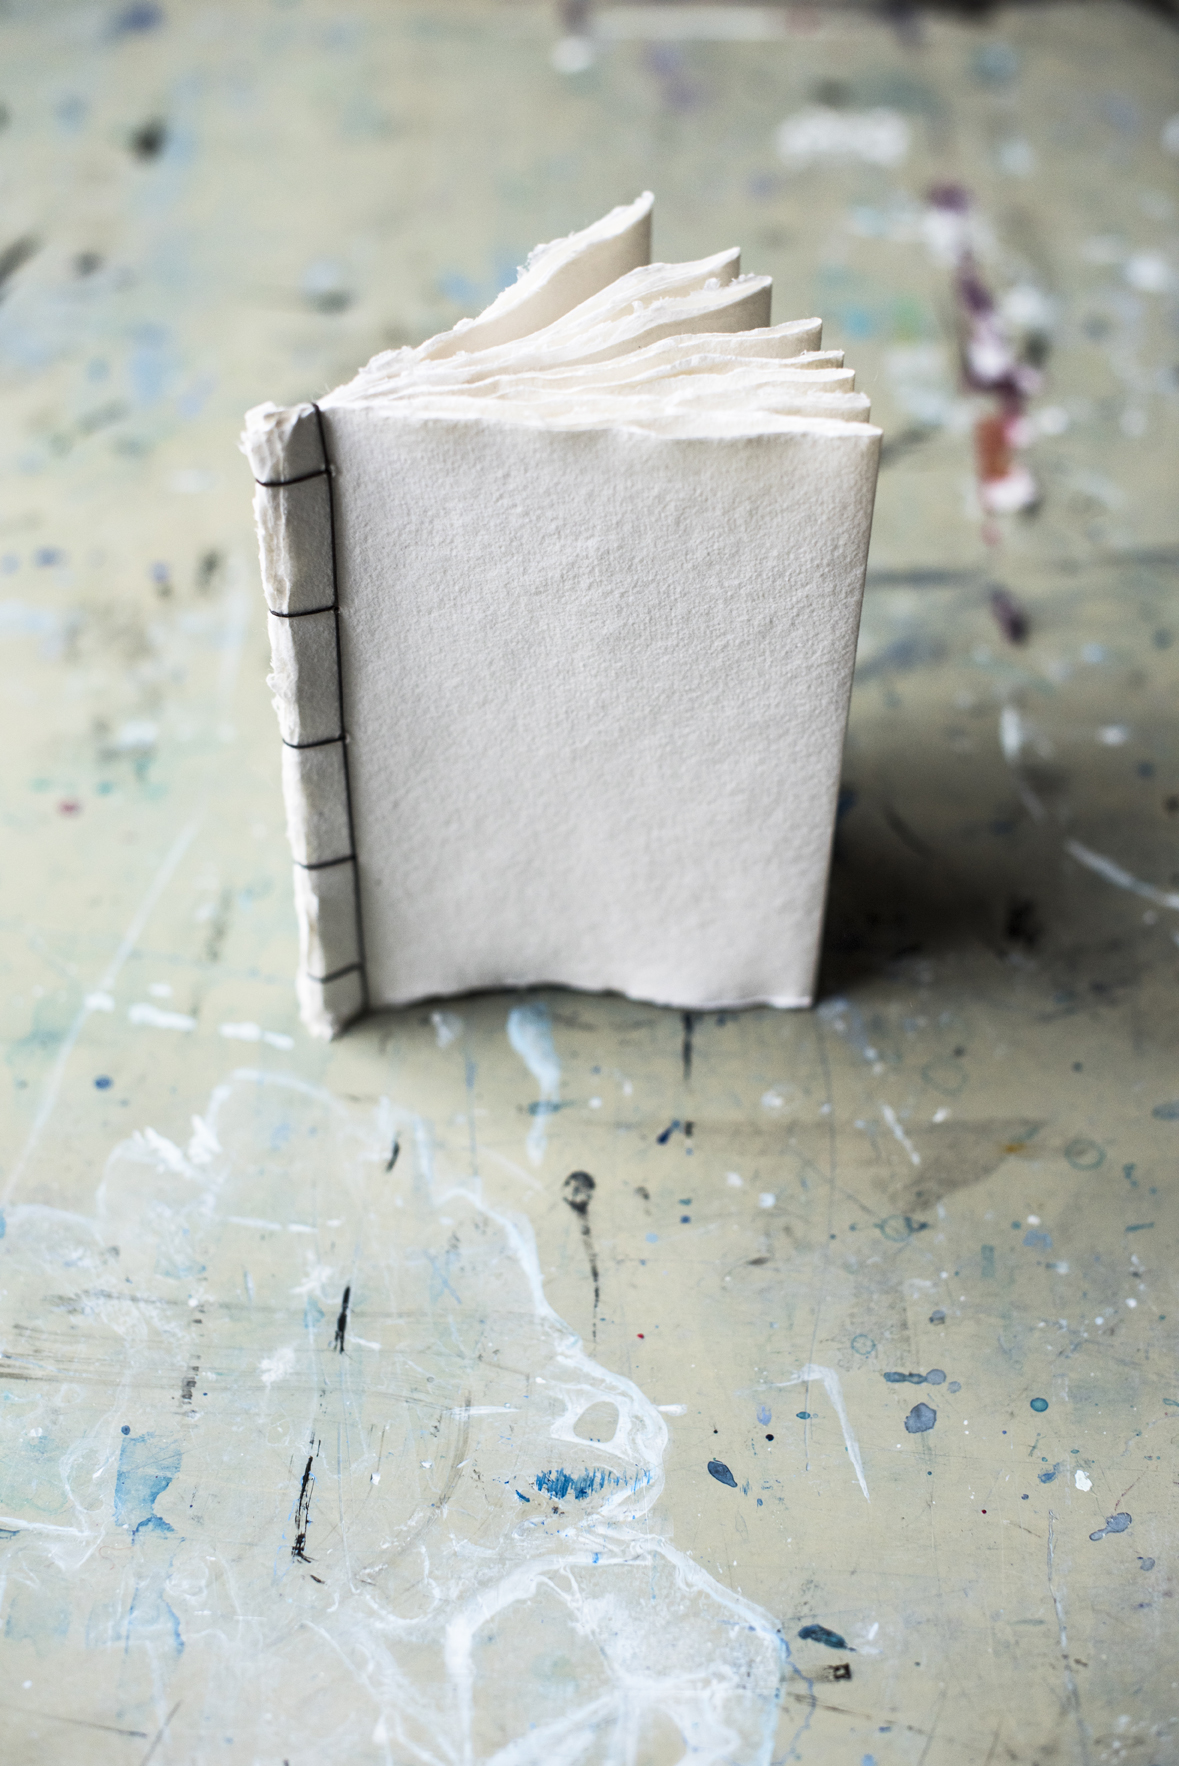 Finished Japanese Stab Binding from Bound: 15 Beautiful Bookbinding Projects by Rachel Hazell